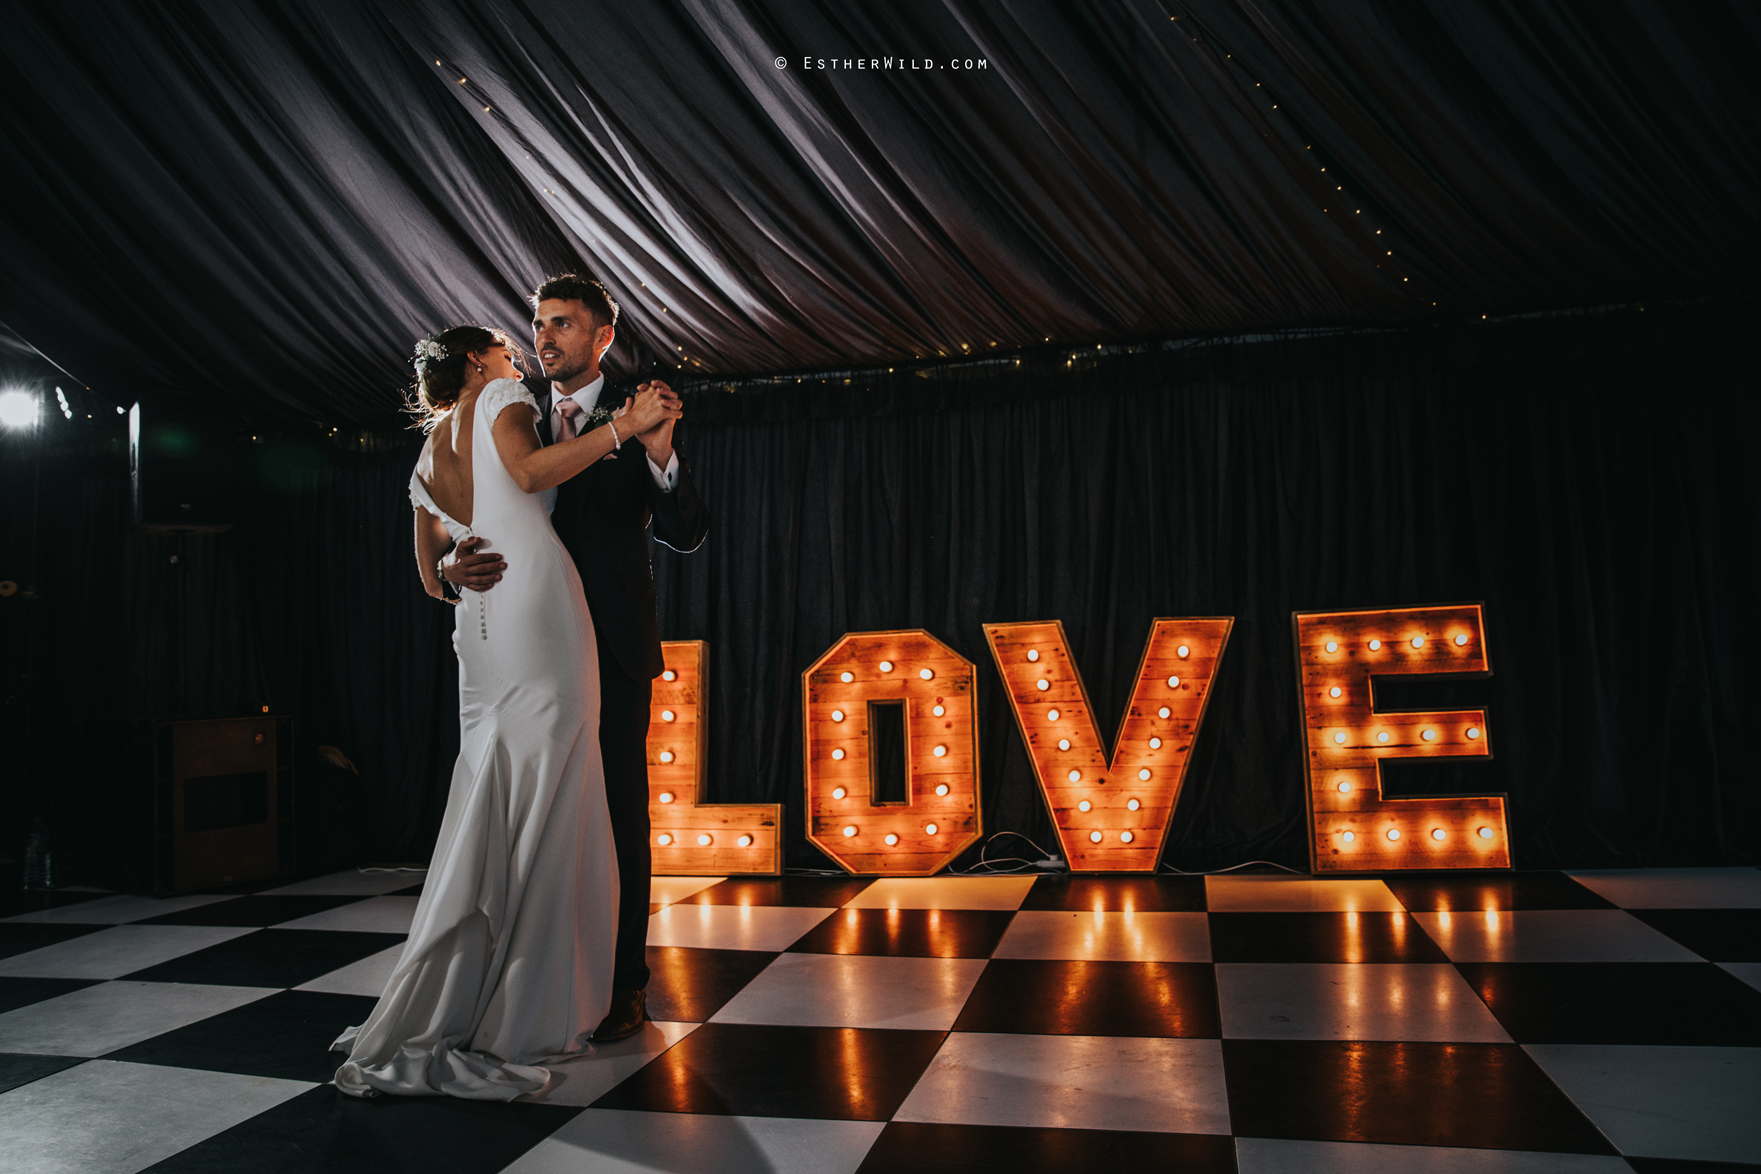 Wootton_Wedding_Copyright_Esther_Wild_Photographer_IMG_3181.jpg